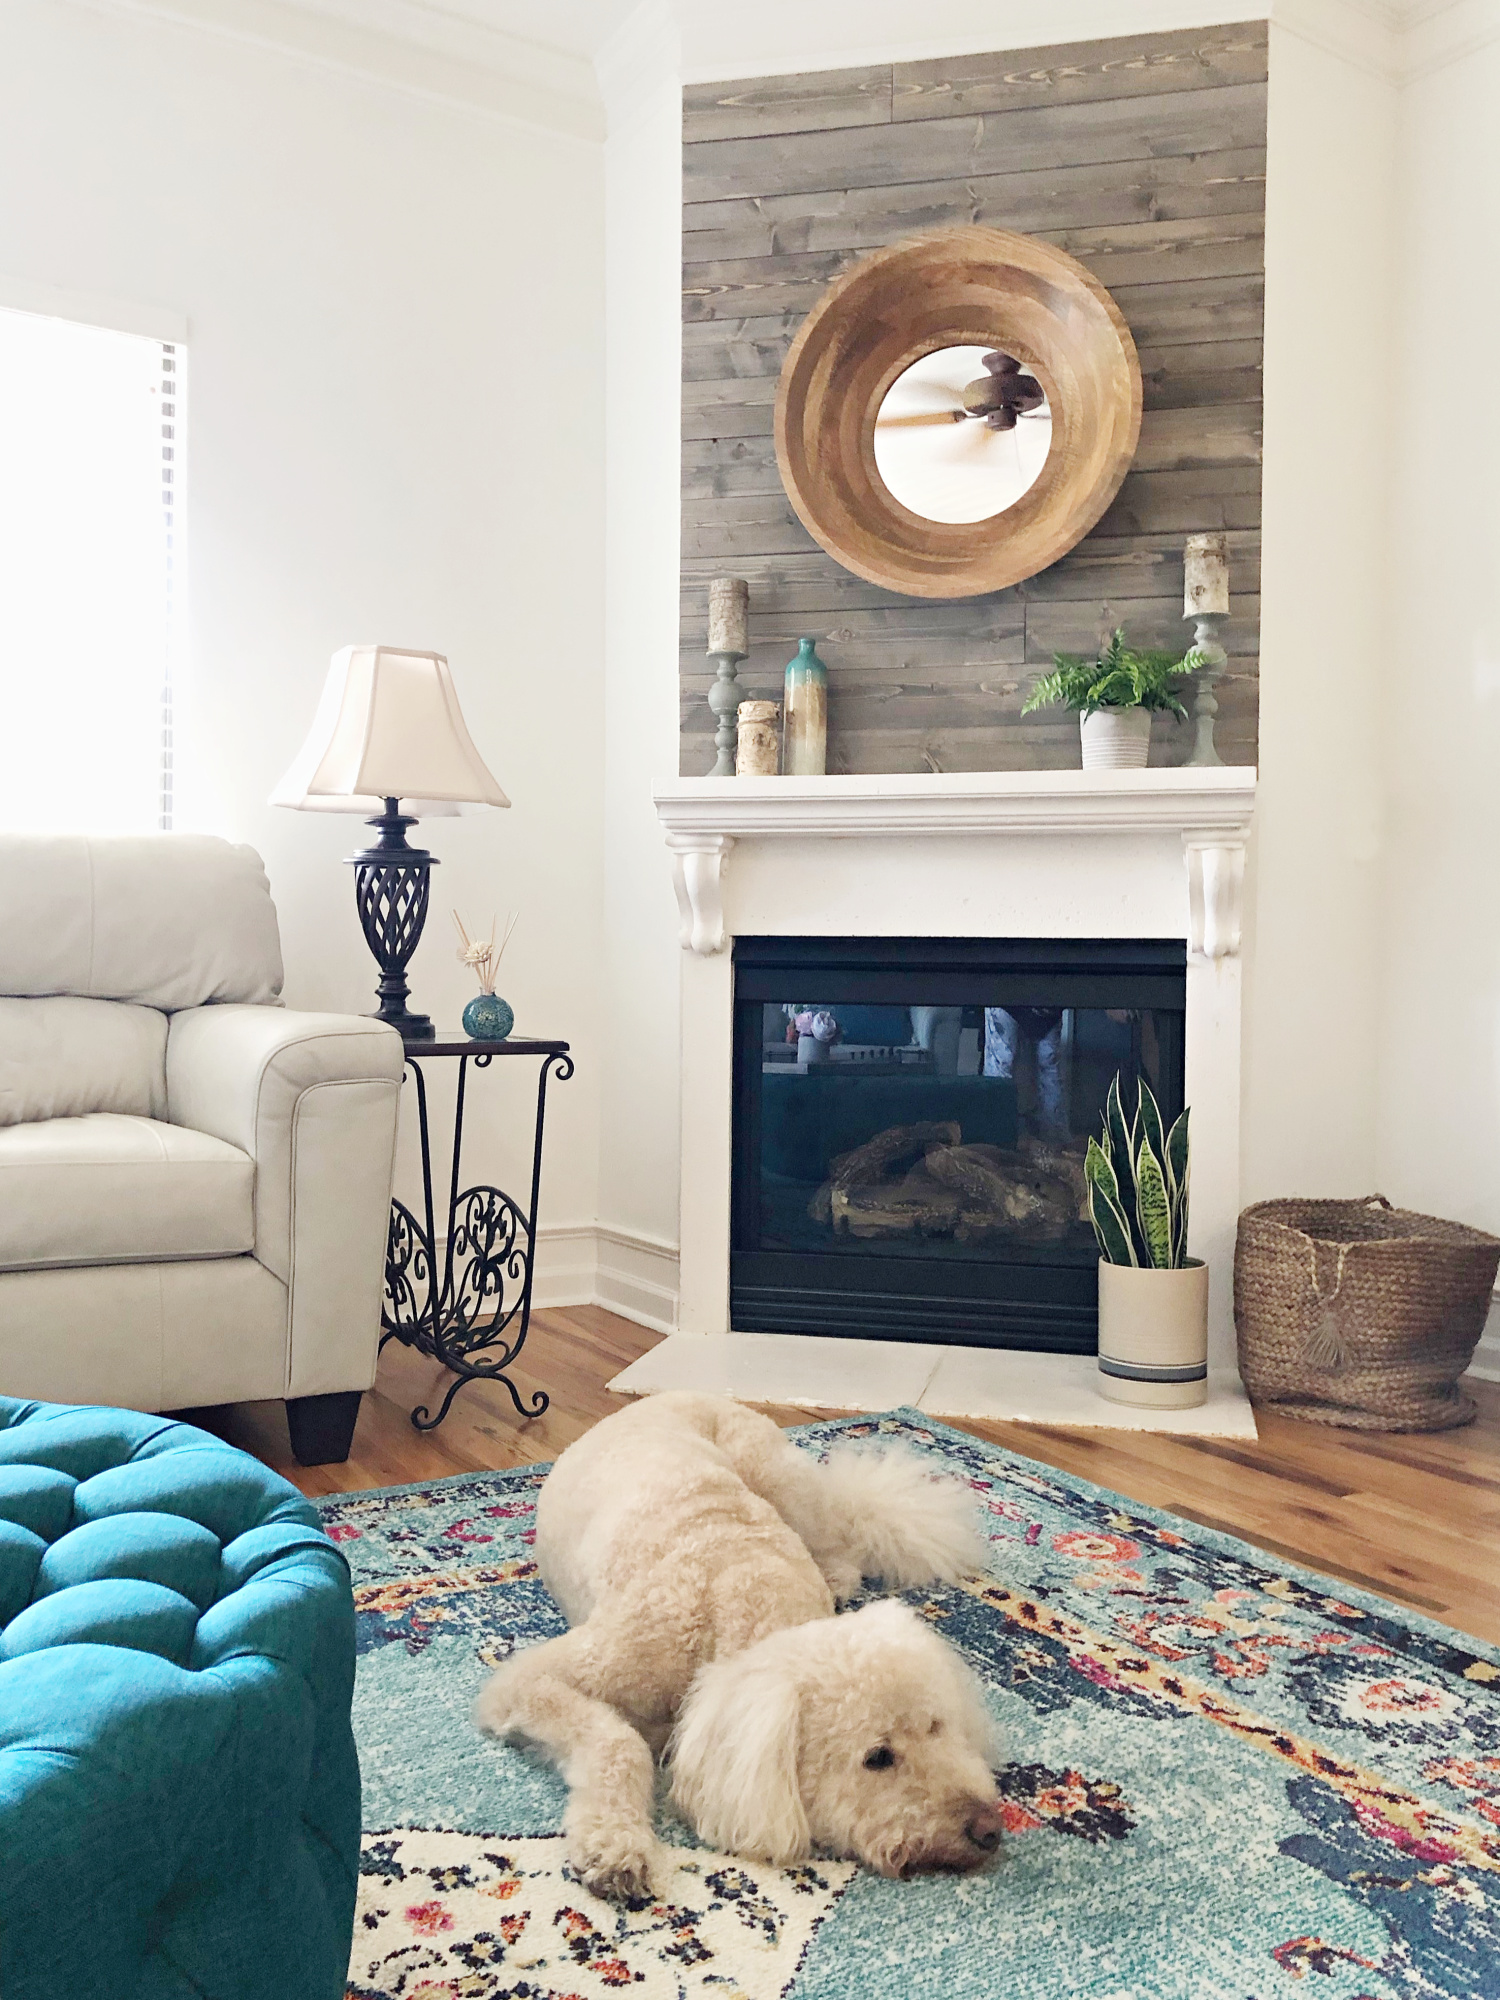 Teal home decor ideas - TEAL LIVING ROOM DECOR - LAKE CONDO or Beach